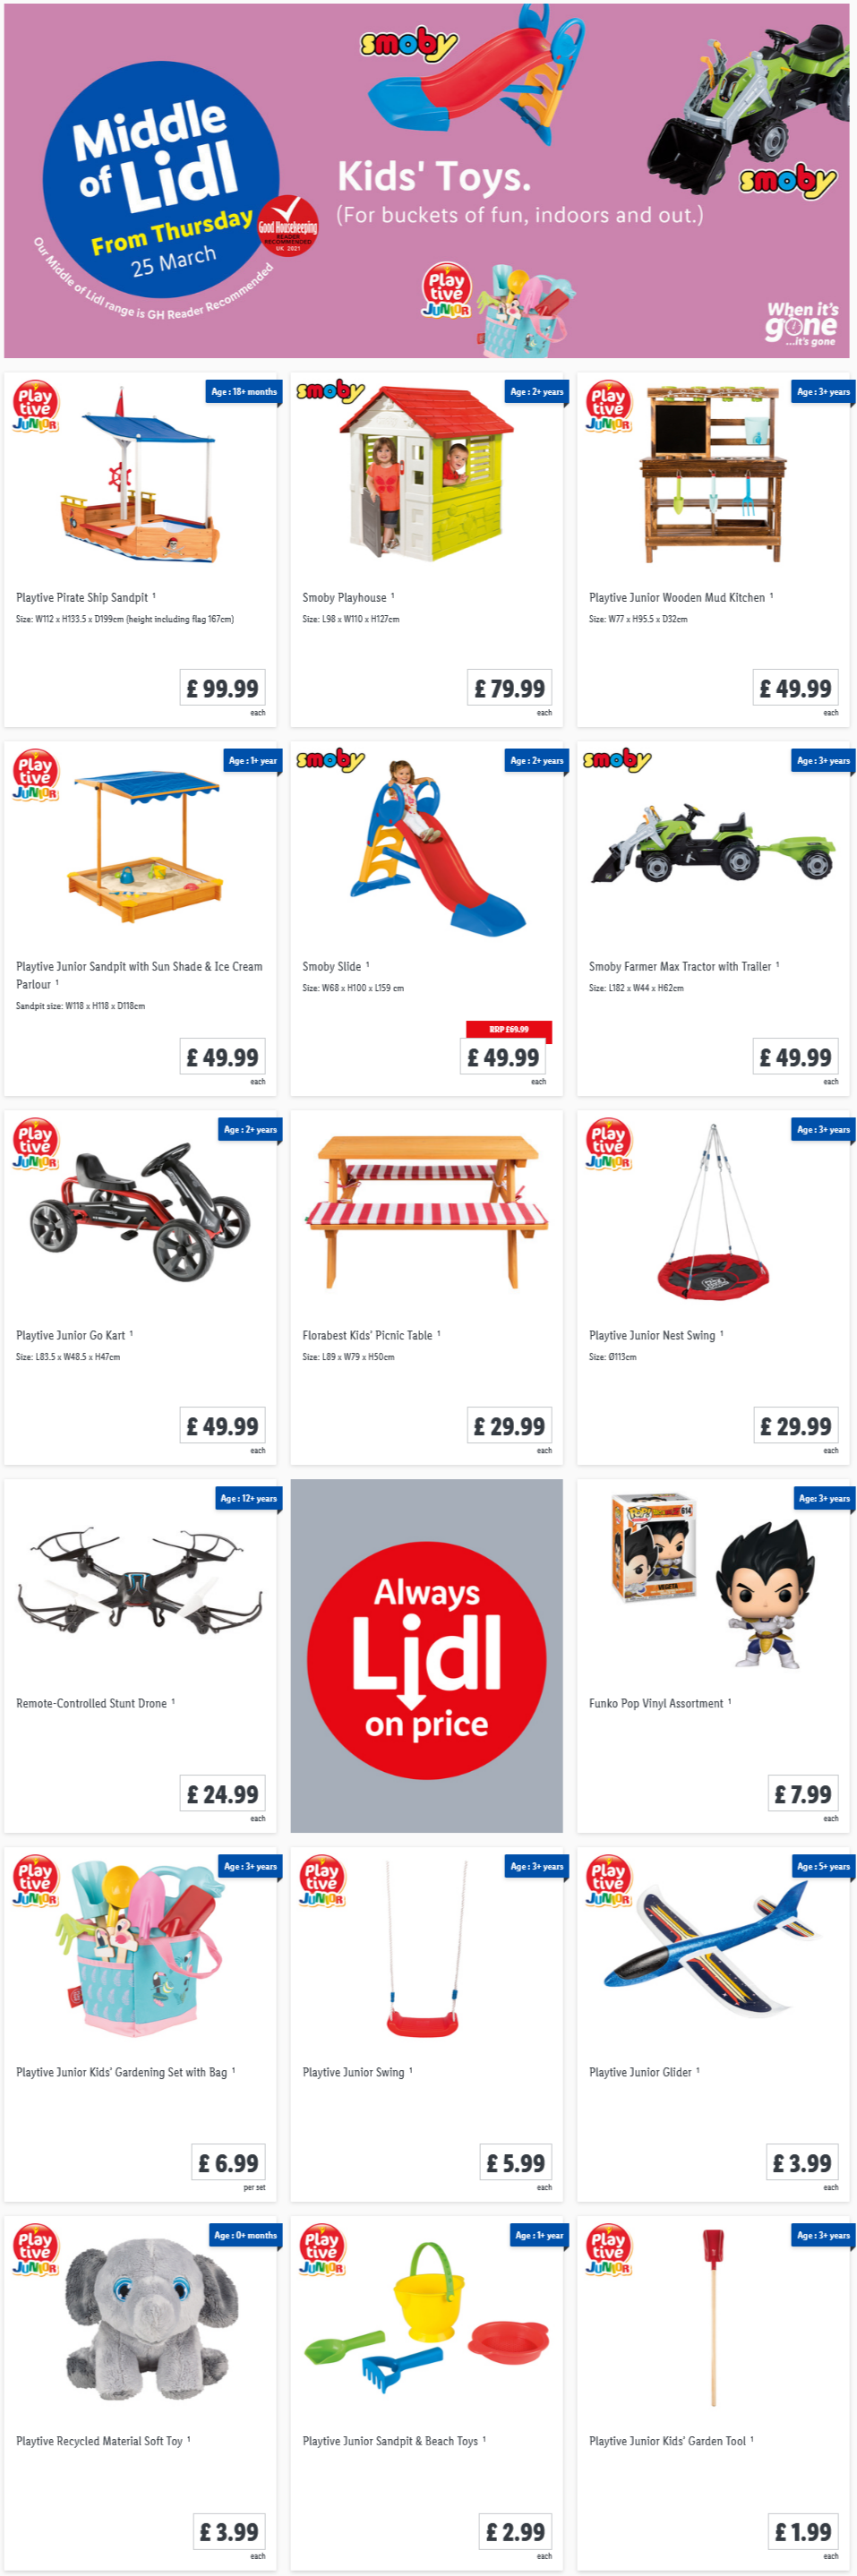 LiDL Kids Toys From 25th March 2021 LIDL Offers this Thursday